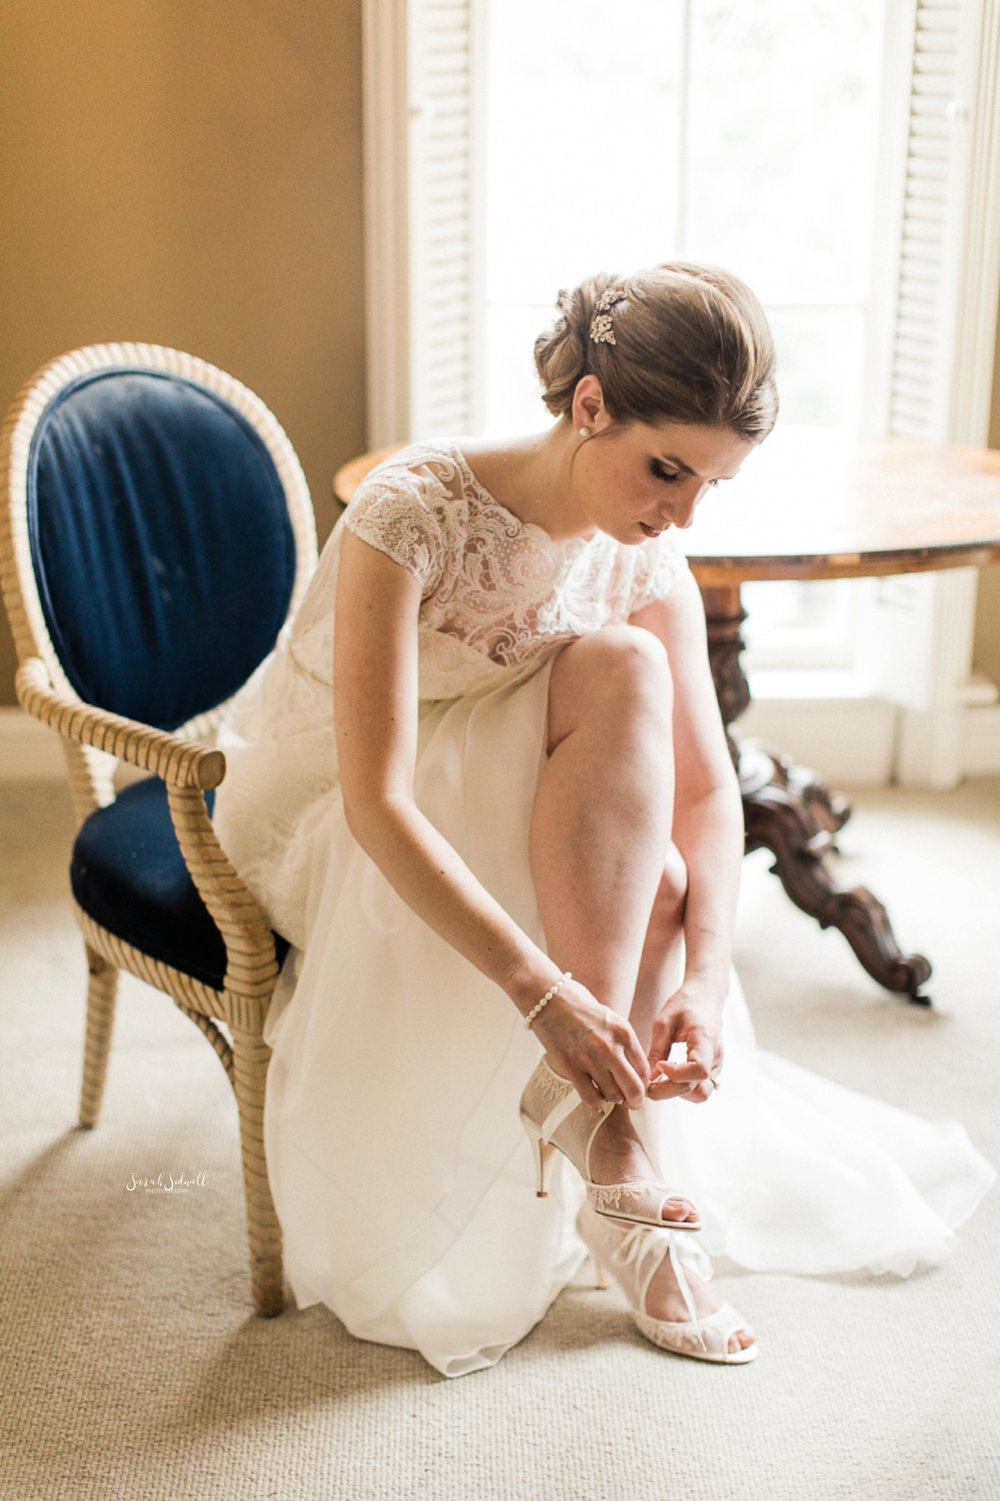 A bride sits to buckle her shoe.